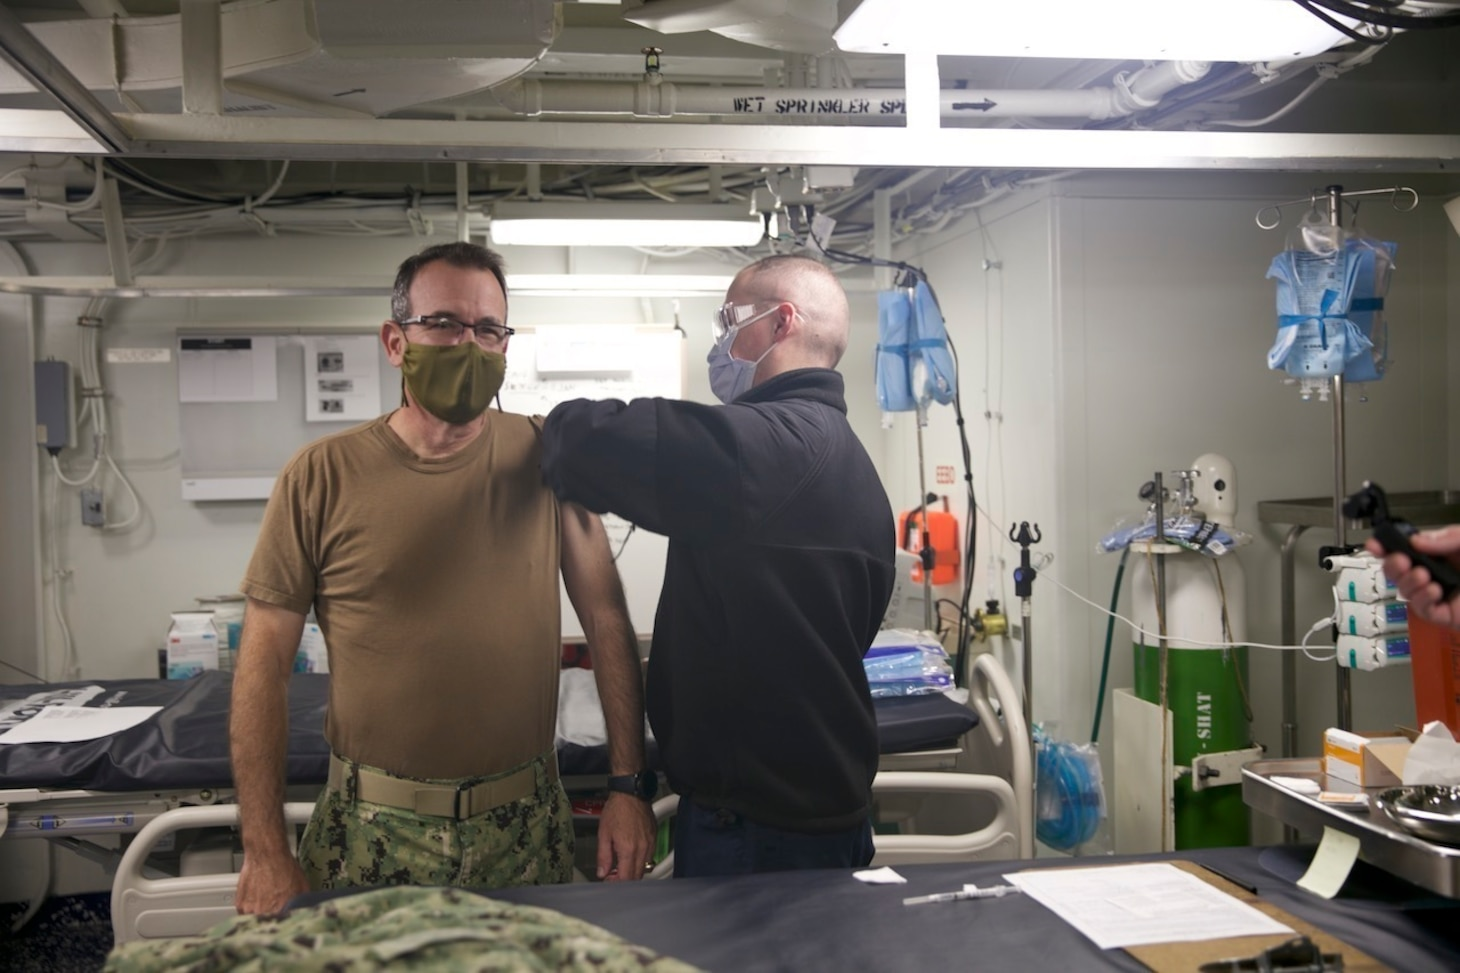 Rear Adm. Robert Katz, commander, Expeditionary Strike Group (ESG 2), receives the COVID-19 vaccination aboard the amphibious transport dock ship USS San Antonio (LPD 17), Jan. 11, 2021